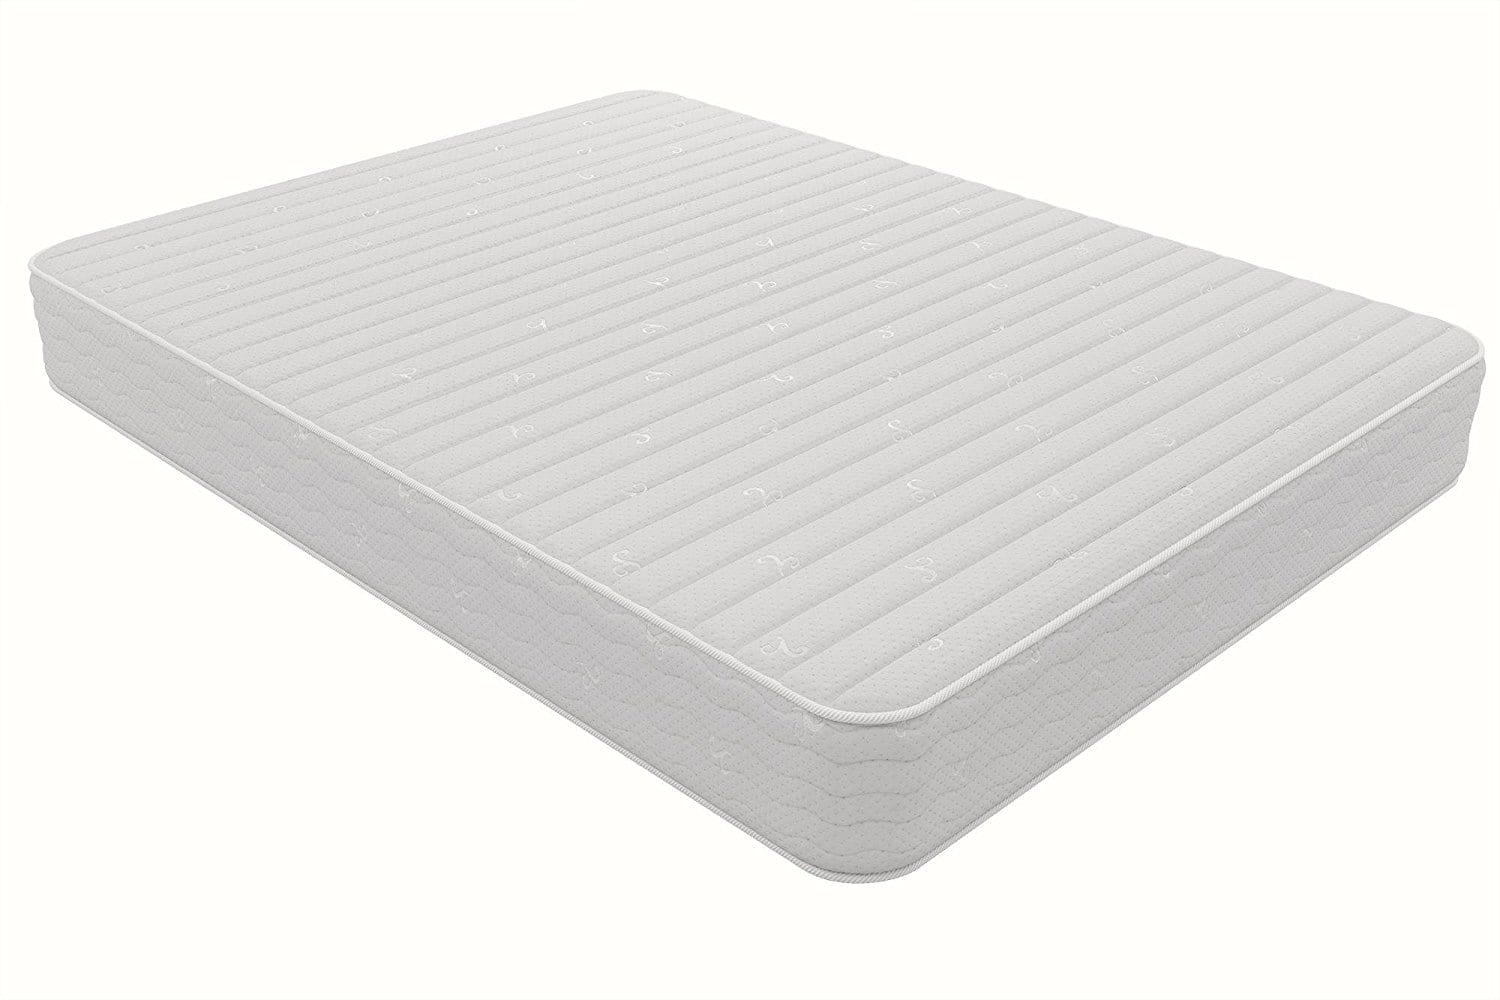 Signature Sleep Contour 8 Inch Independently Encased Coil Mattress: Queen $131, King $160 + Free Shipping